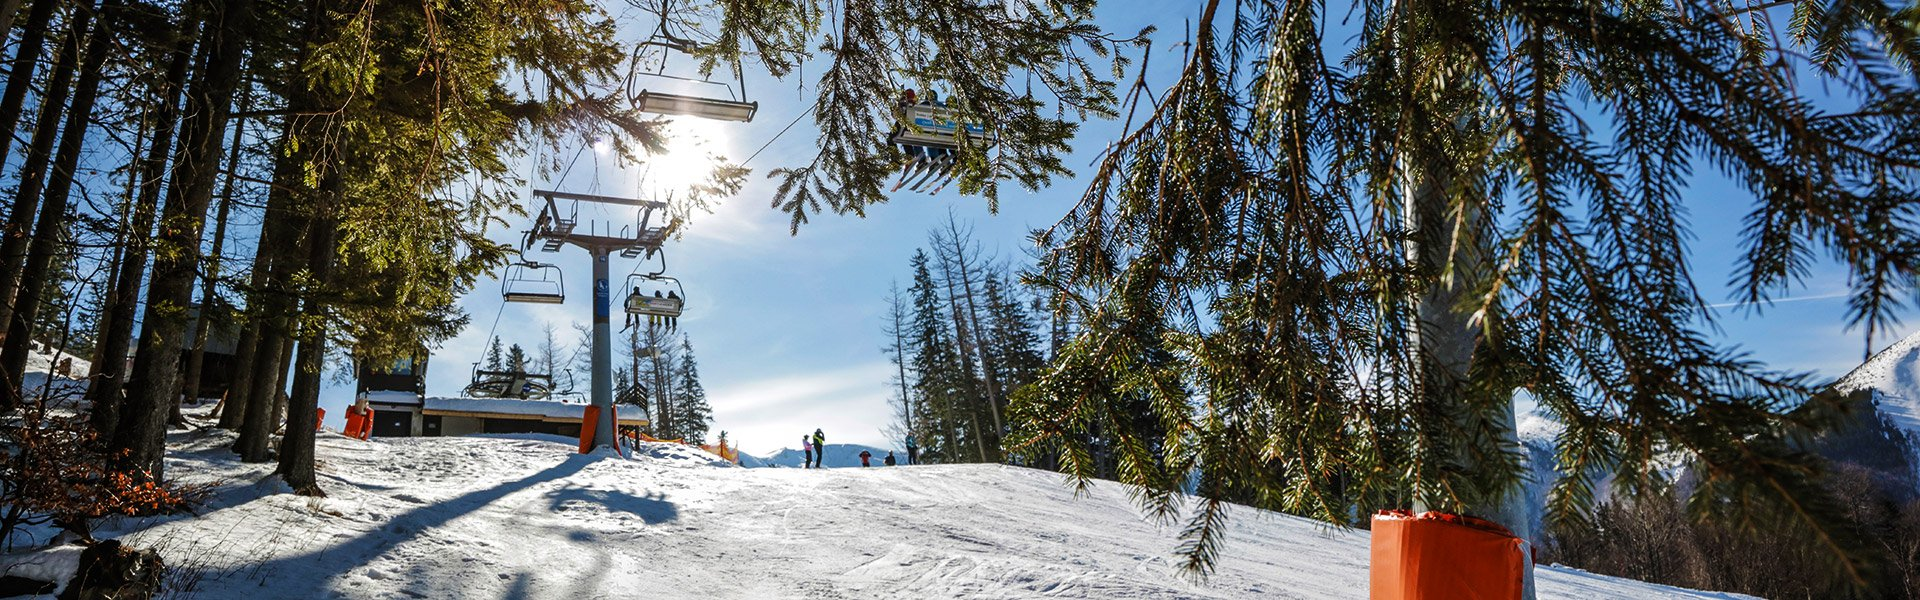 PACKAGES - WINTER 2019 SKI HOLIDAY IN THE MOUNTAINS OF MALA FATRA - SLOVAKIA